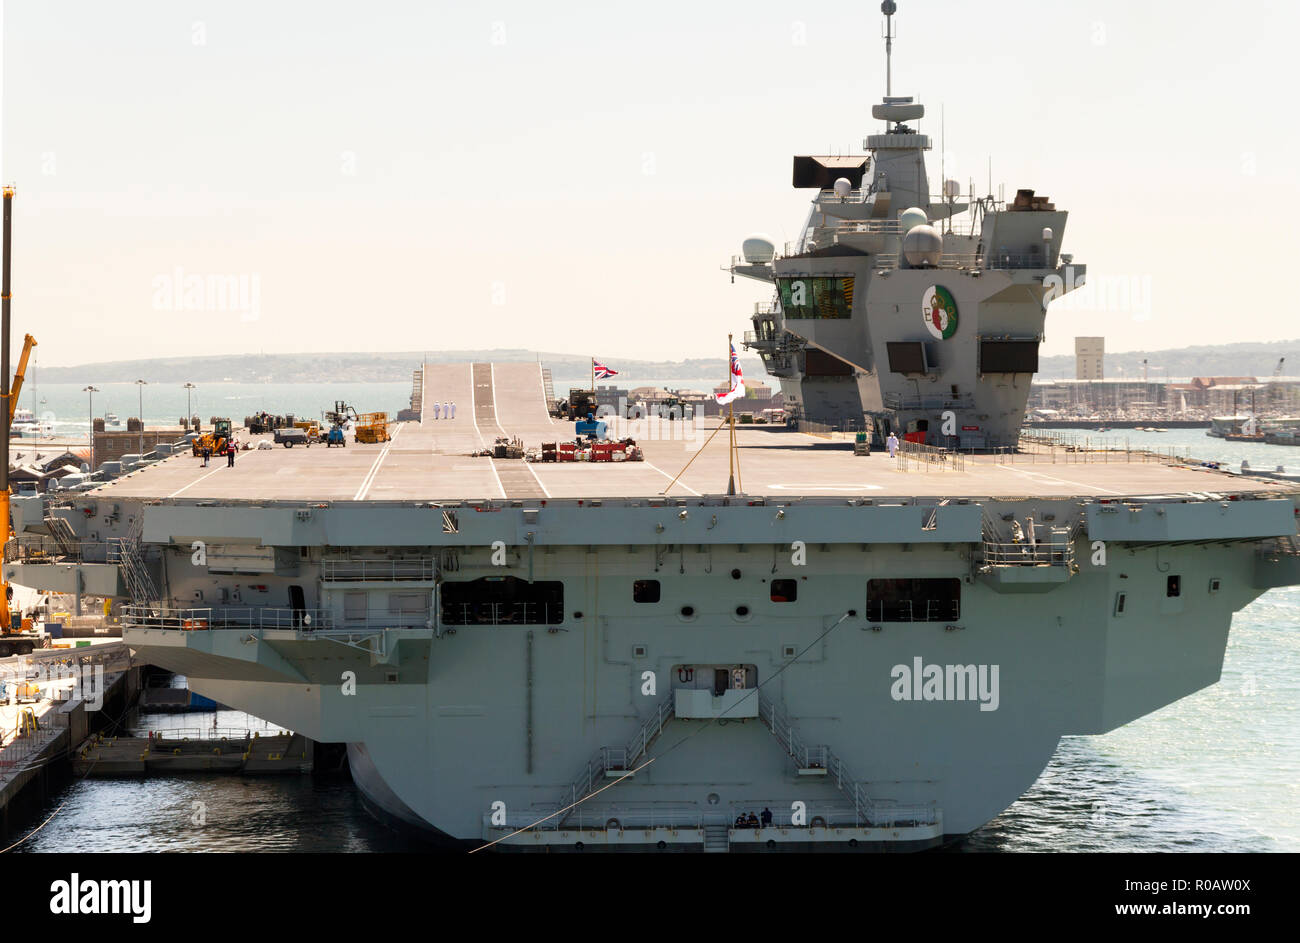 HMS the Queen Elizabeth the new Royal Navy aircraft carrier - Stock Image